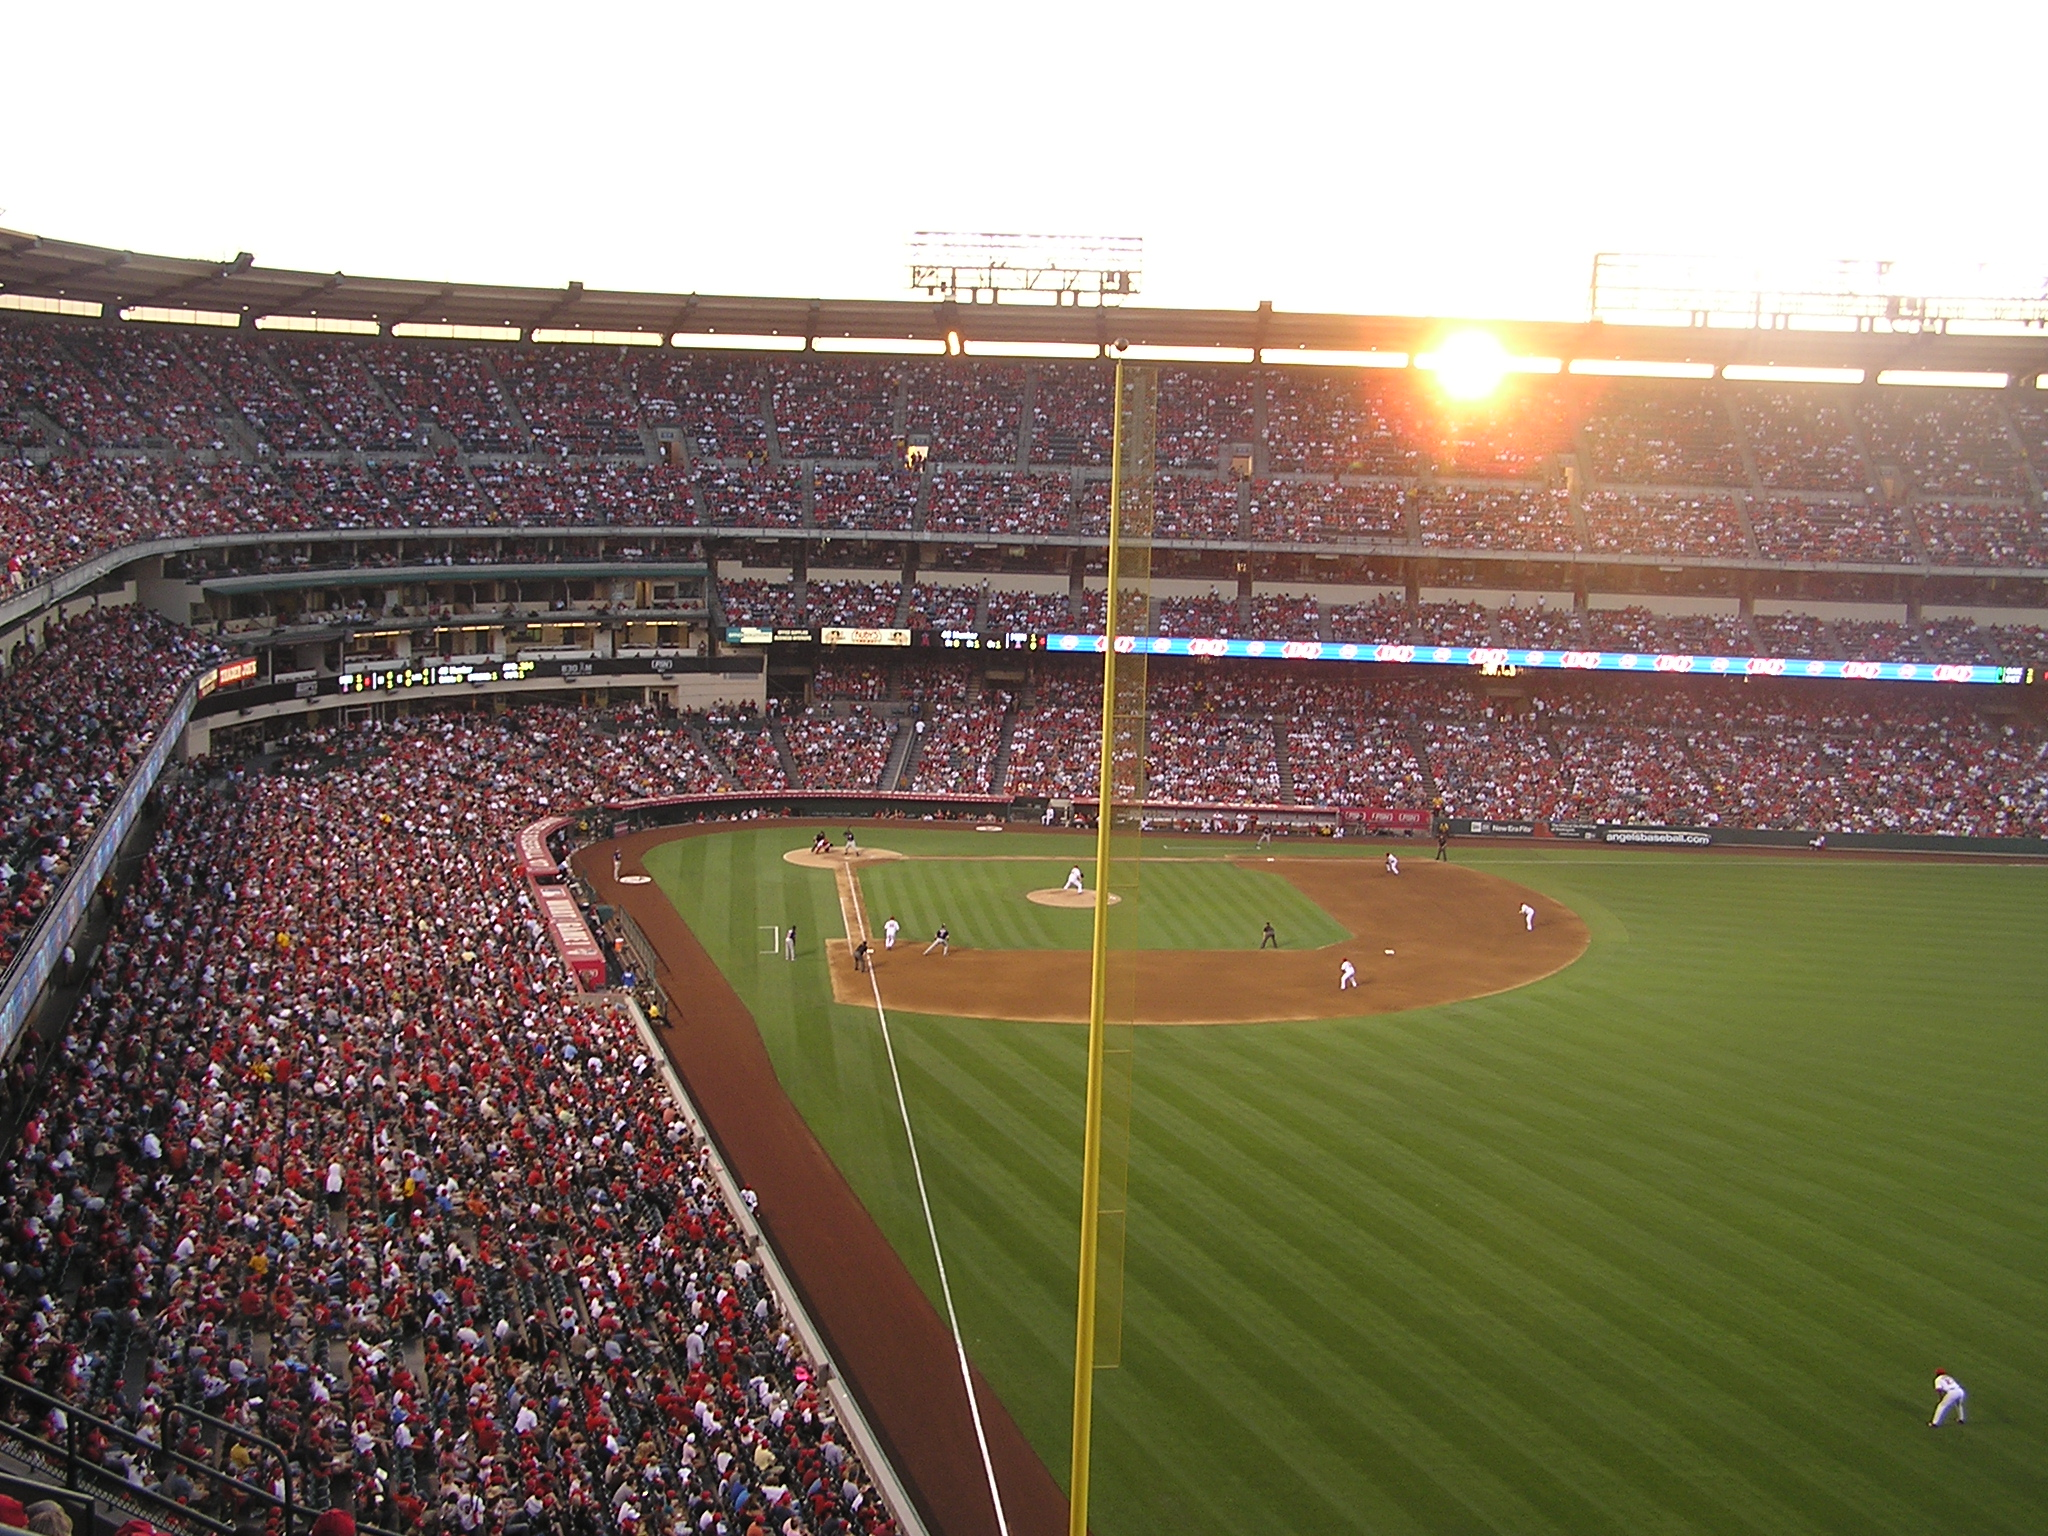 The Sun sets through the opening at Angel Stadium